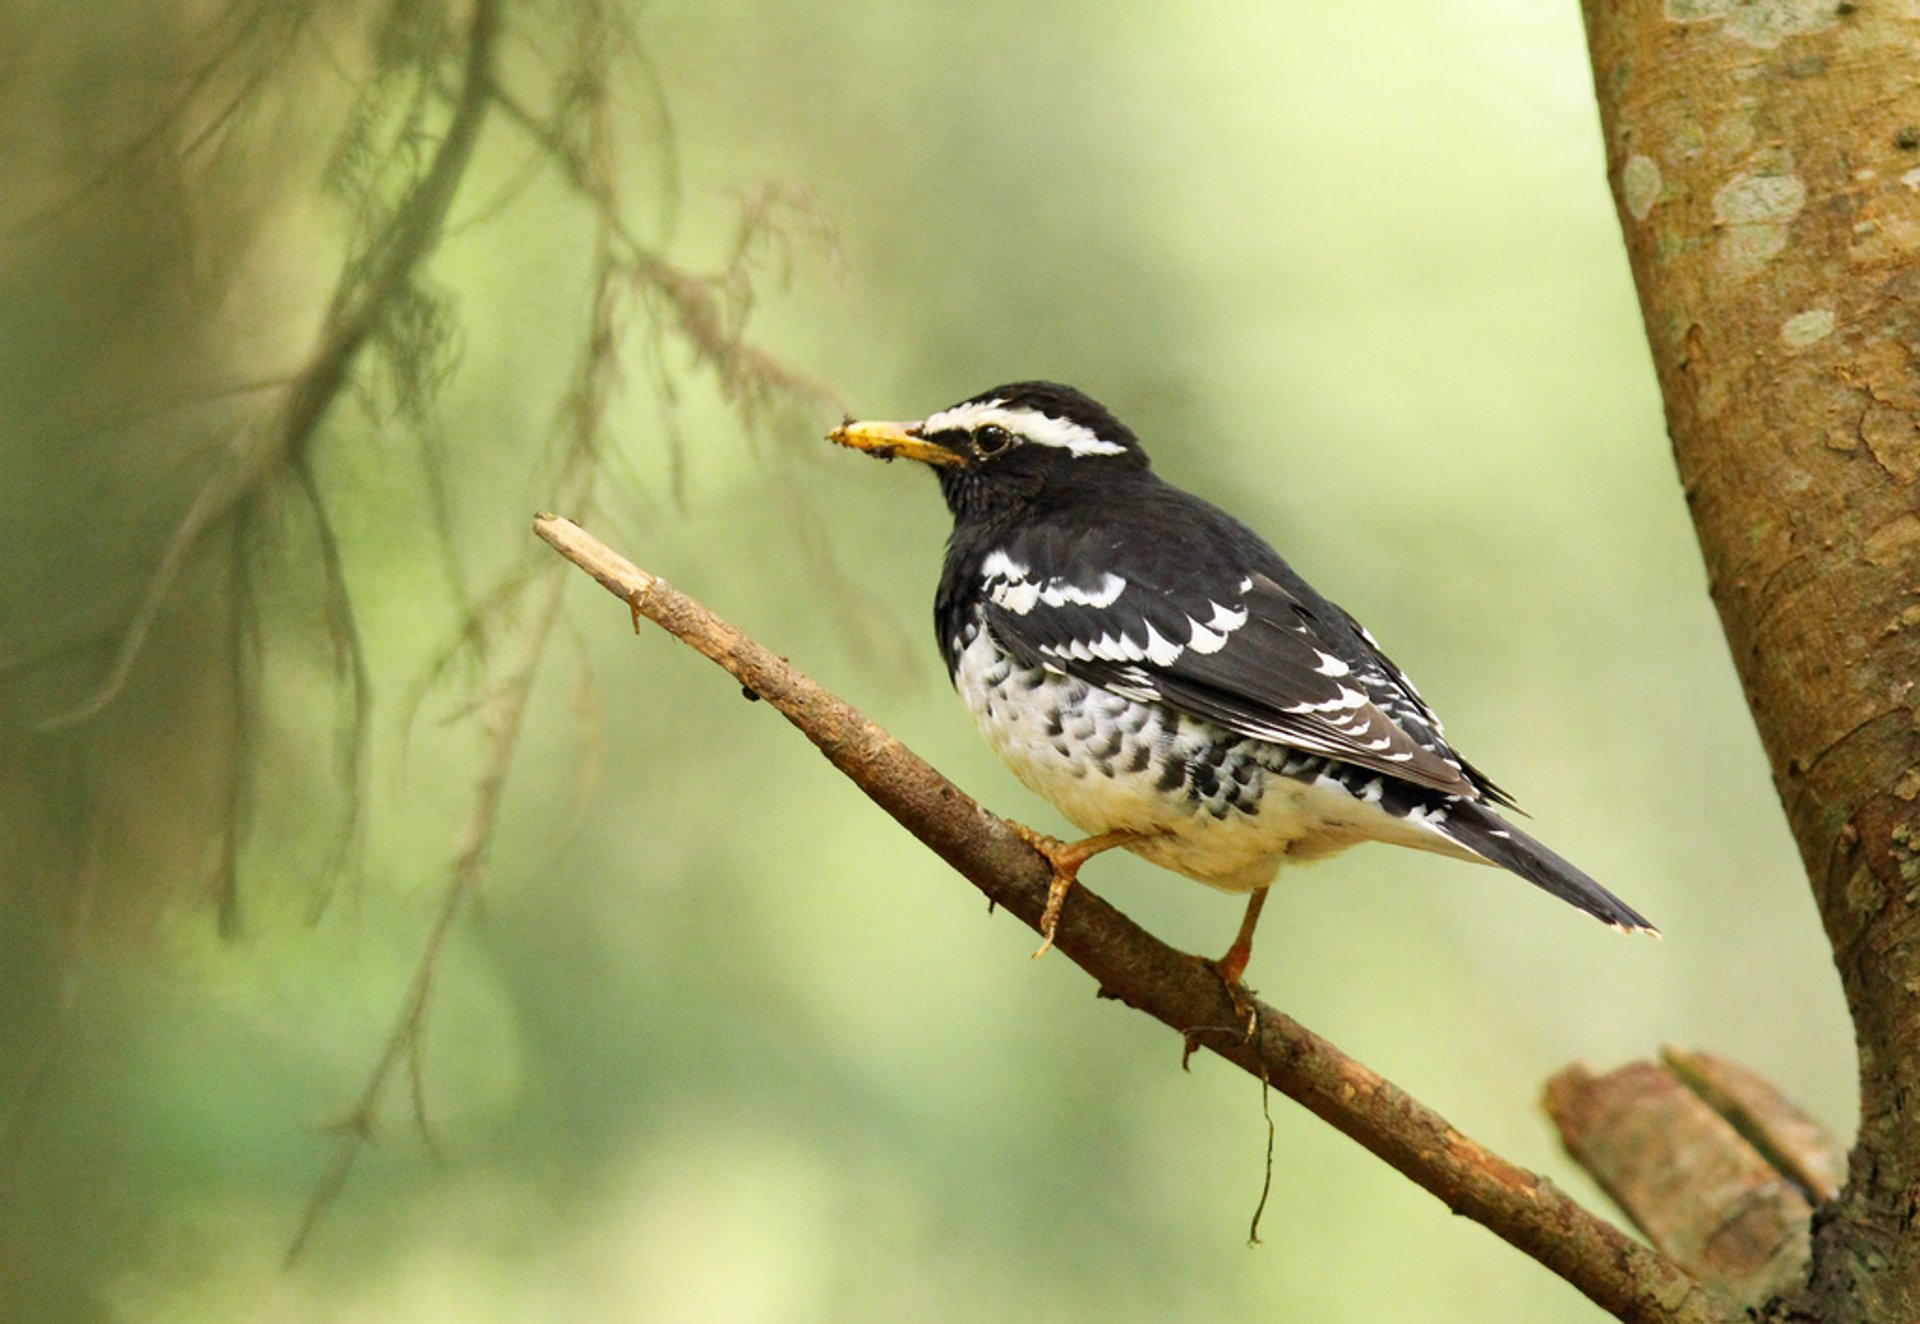 Birdwatching in Sri Lanka 2020 - Best Time